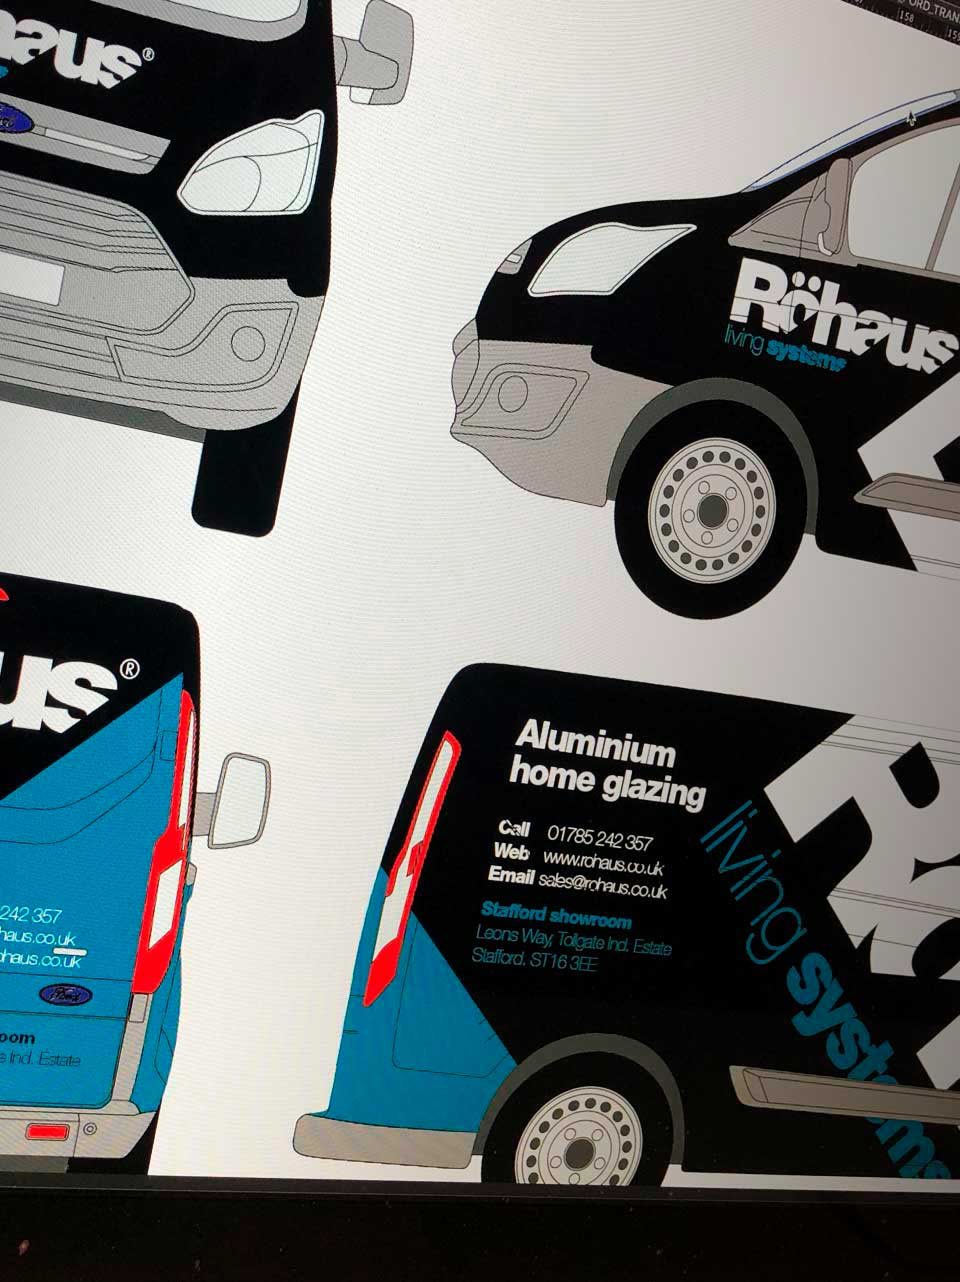 Vehicle Livery Design for Rohaus